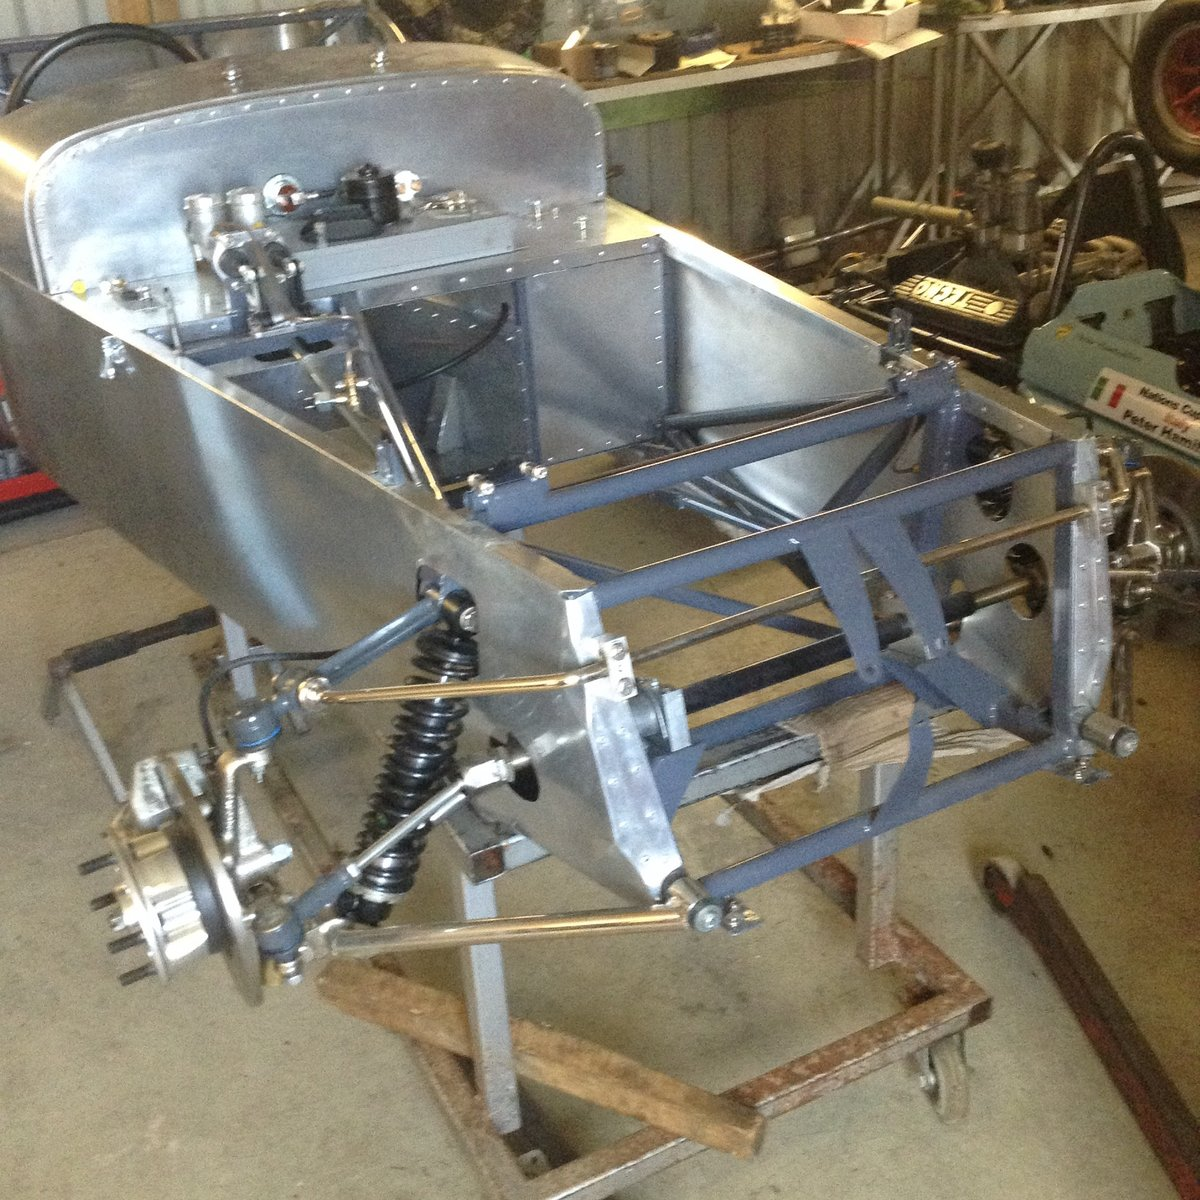 1969 Lotus  Seven S3  (Holbay Spec.) For Sale (picture 1 of 6)